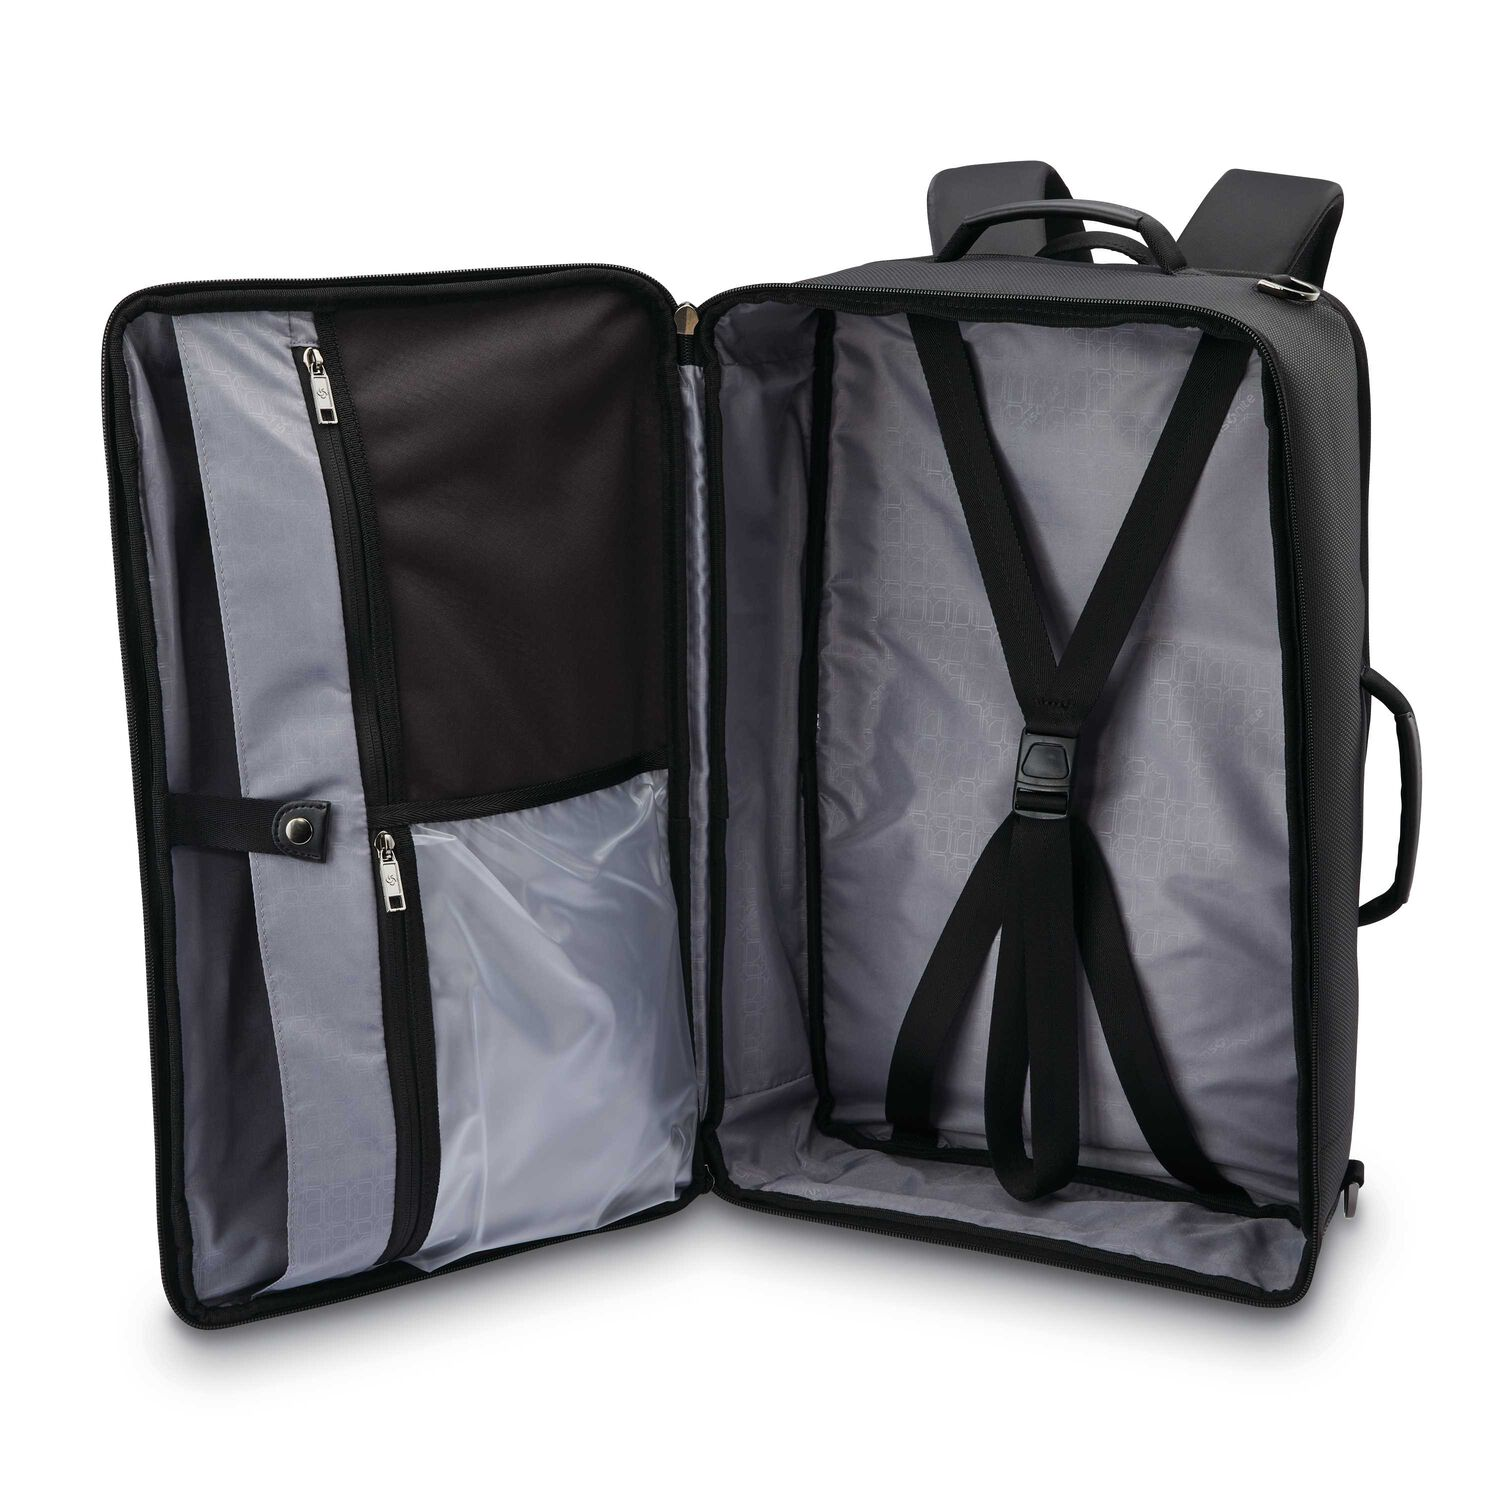 Samsonite Encompass Convertible Overnight Backpack In The Color Black